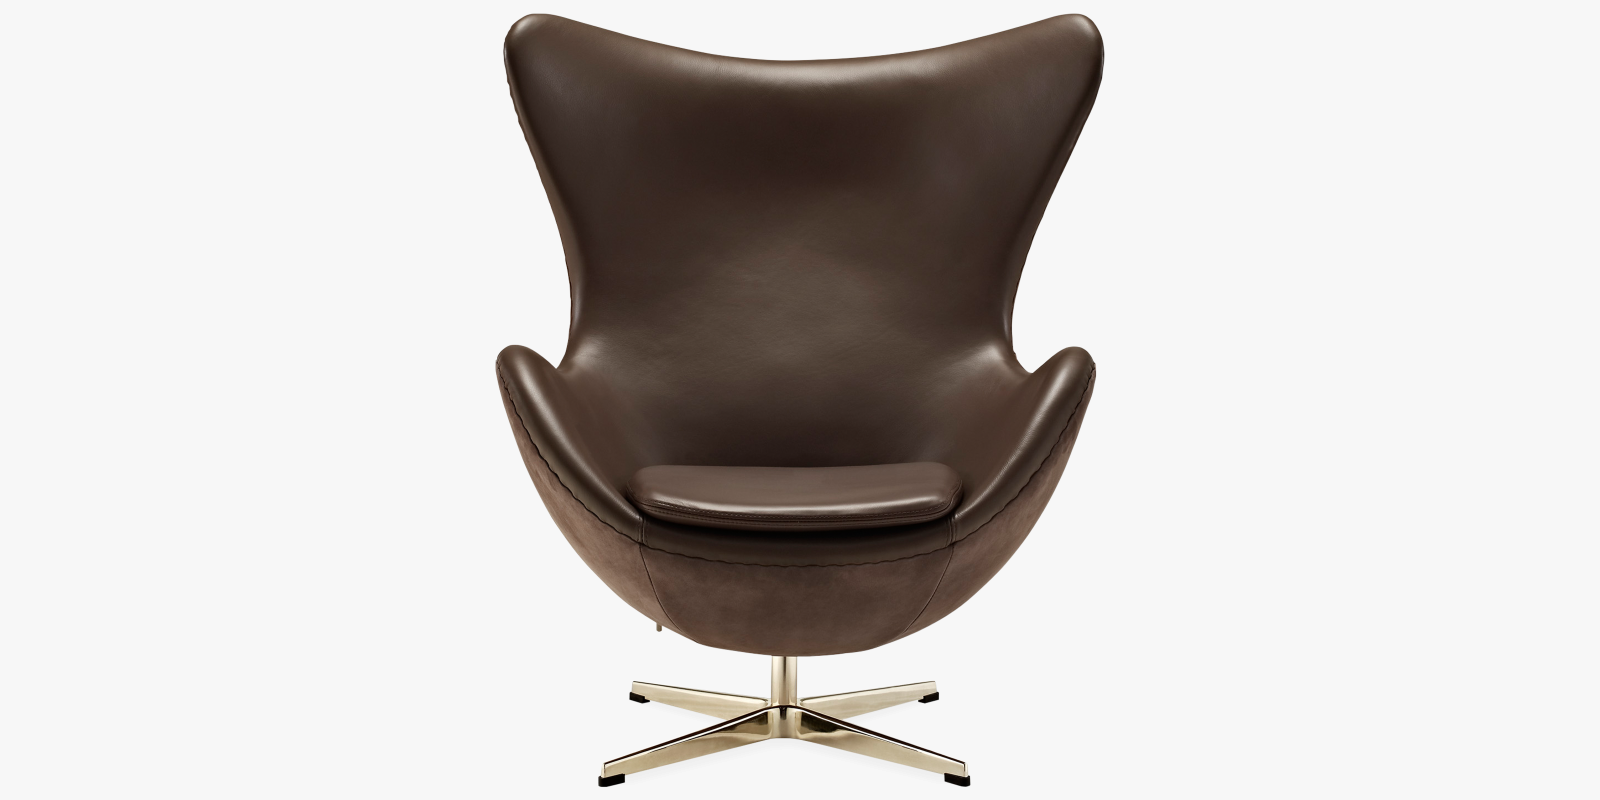 Arne Jacobsen Chair (With images) Arne jacobsen chair